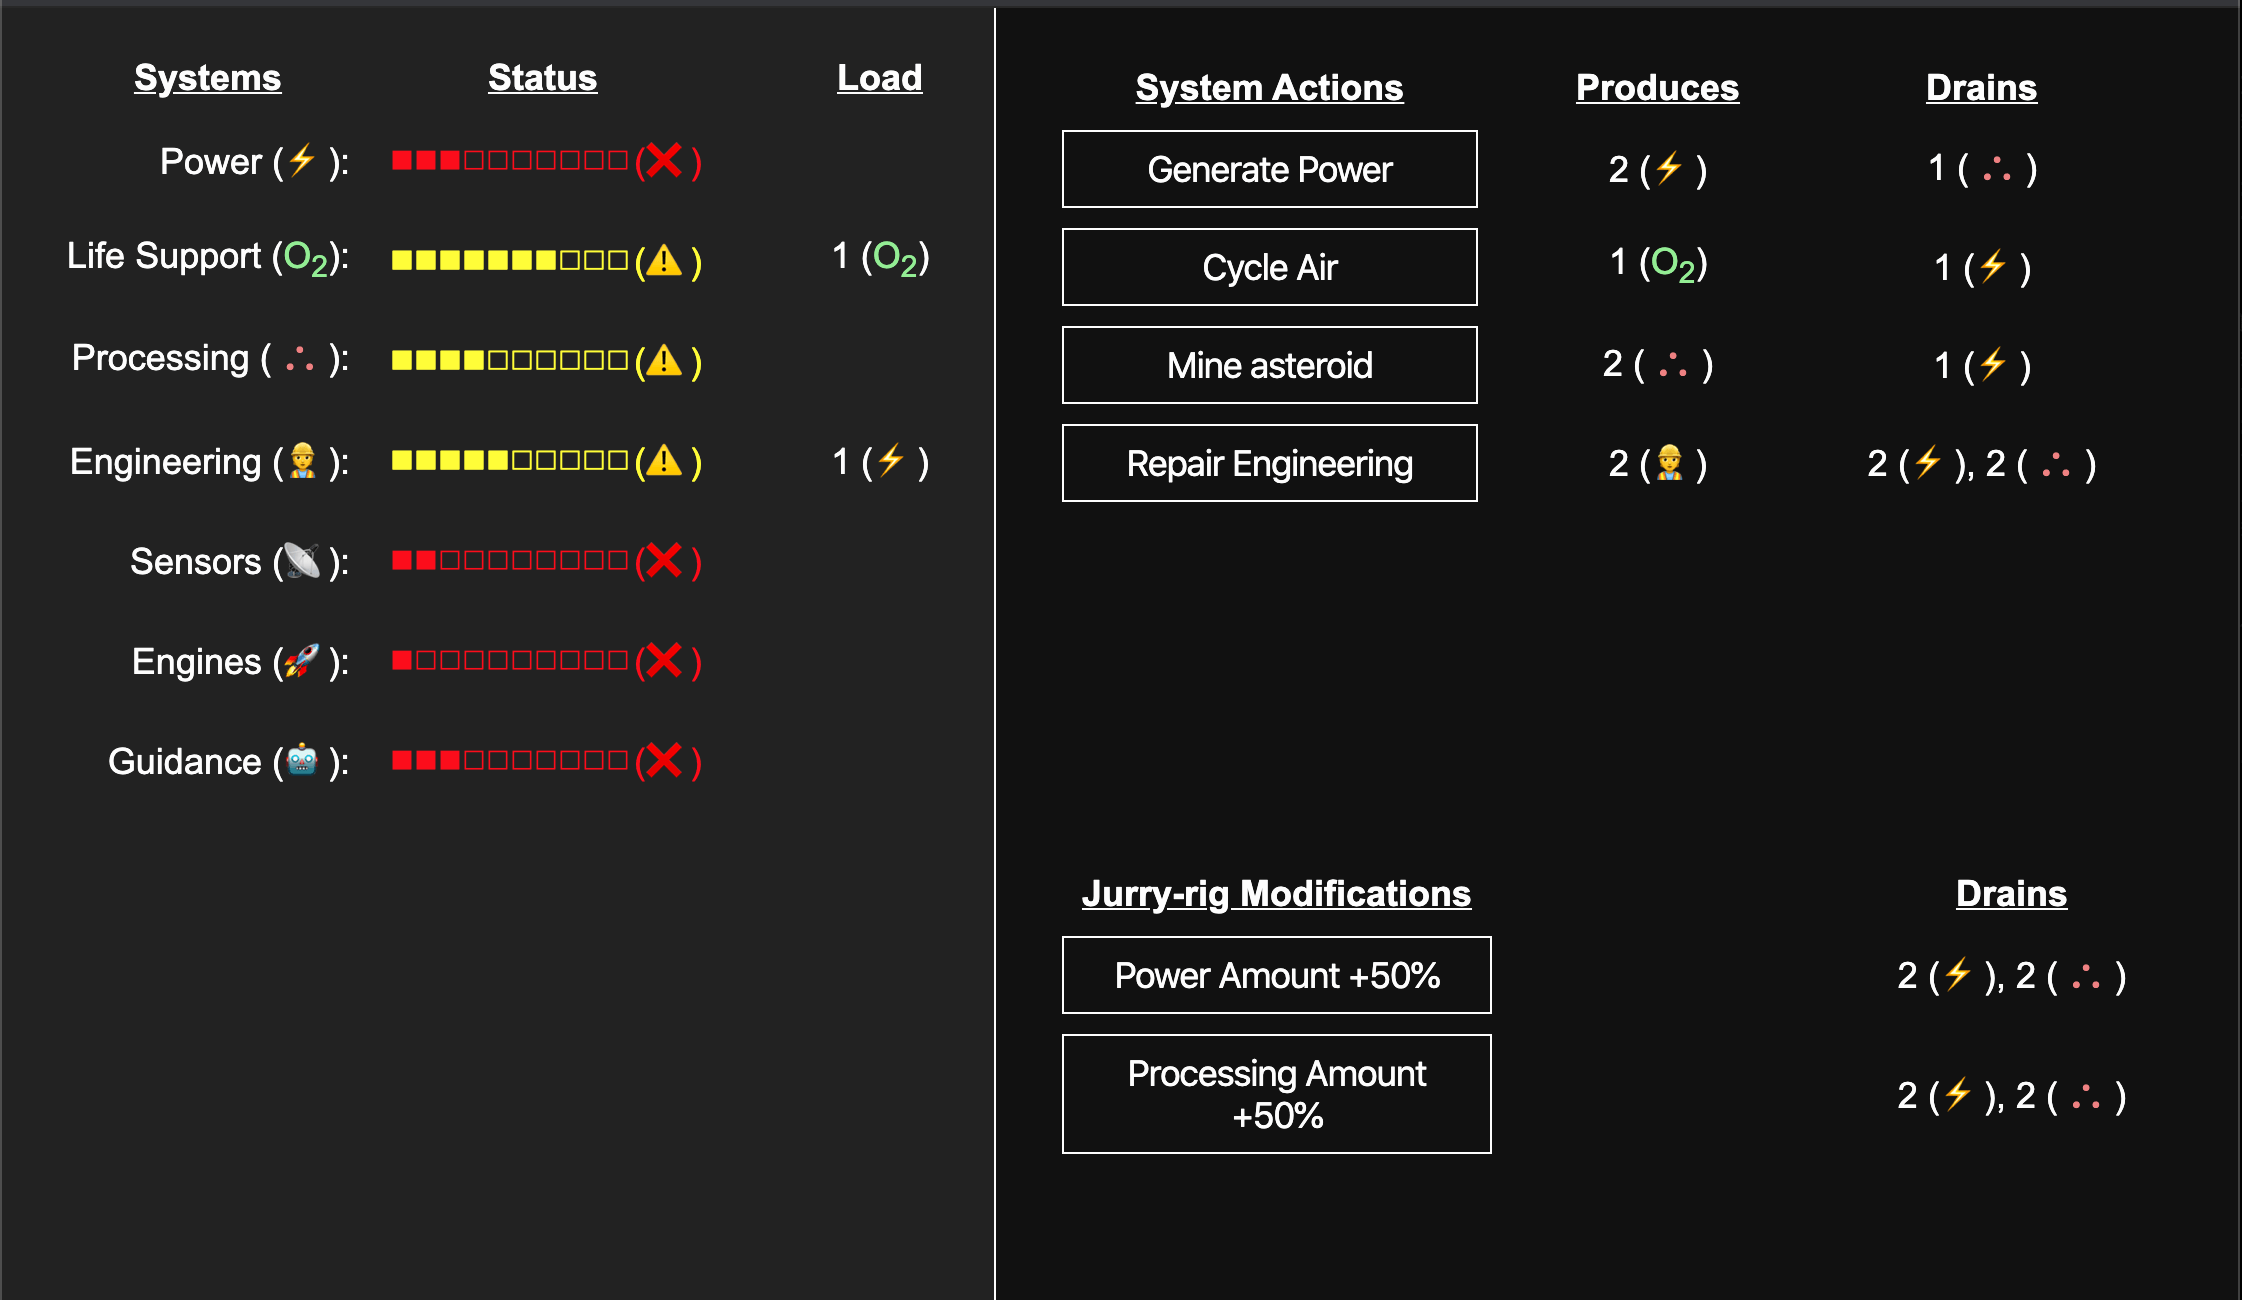 A layout with two tables. The first table describes each system, their current stauts, and load. The second table describes each action, how much it produces, and what it costs.